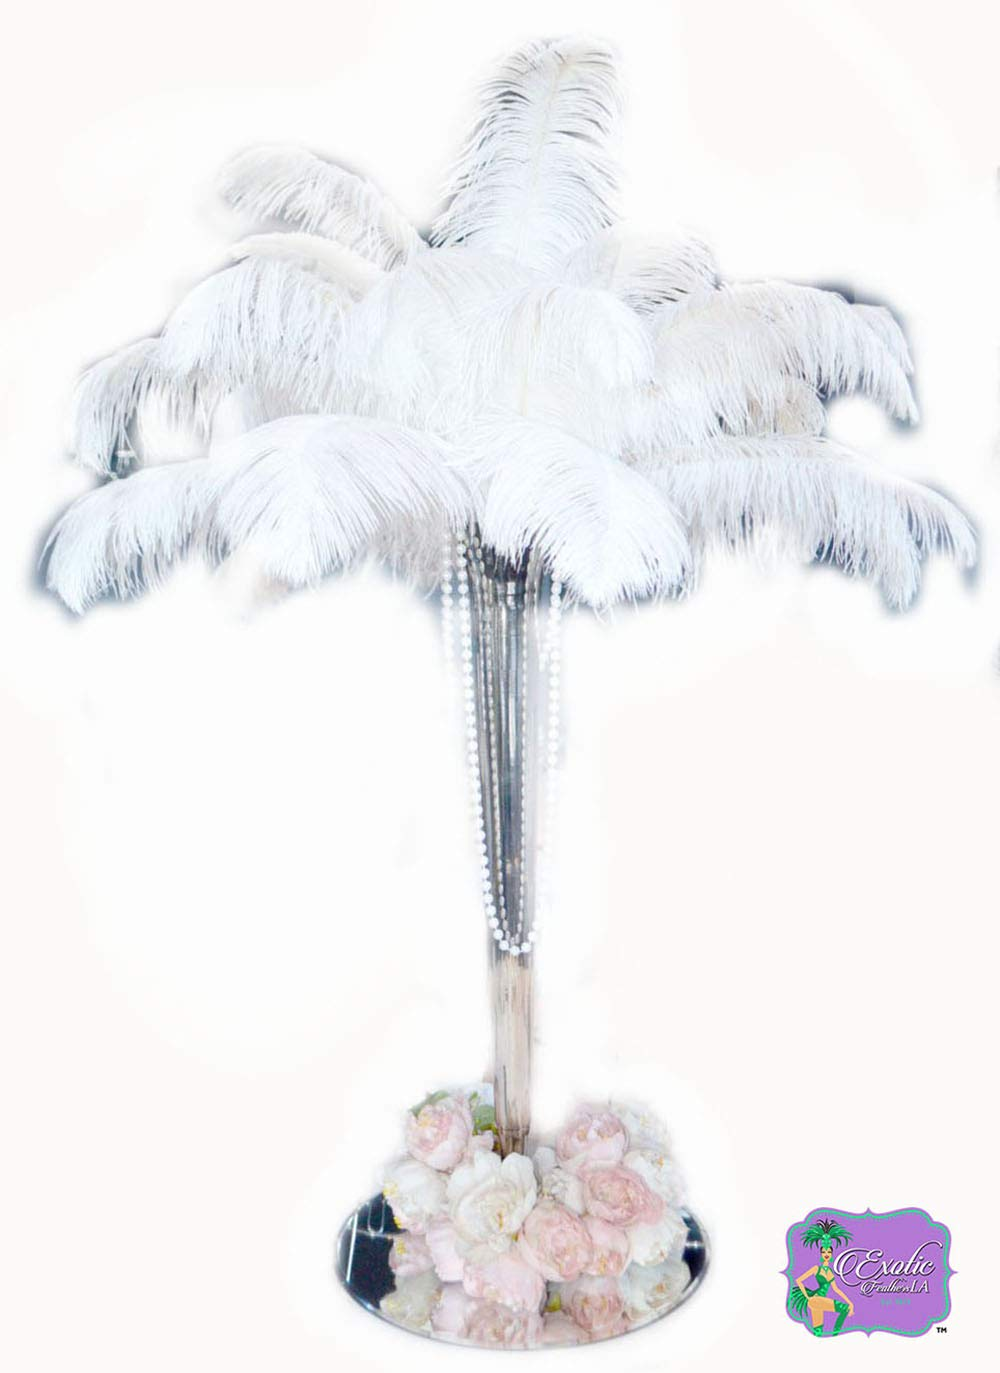 Special Sale Genuine OSTRICH Feathers Wholesale Bulk 10-14'' long DELUXE Feathers BLEACH WHITE (100 pieces)